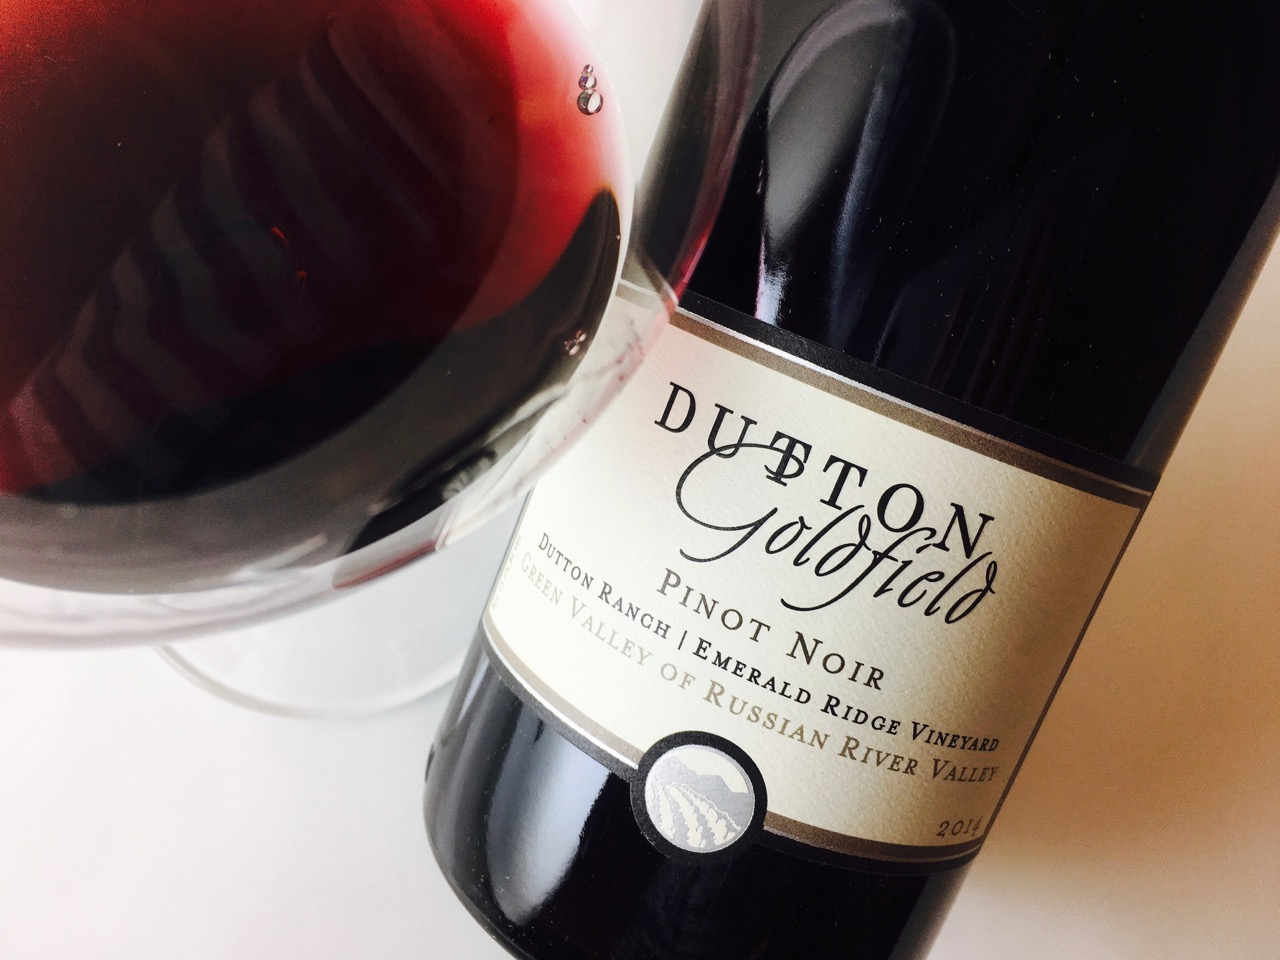 2014 Dutton-Goldfield Pinot Noir Emerald Ridge Vineyard Green Valley of Russian River Valley